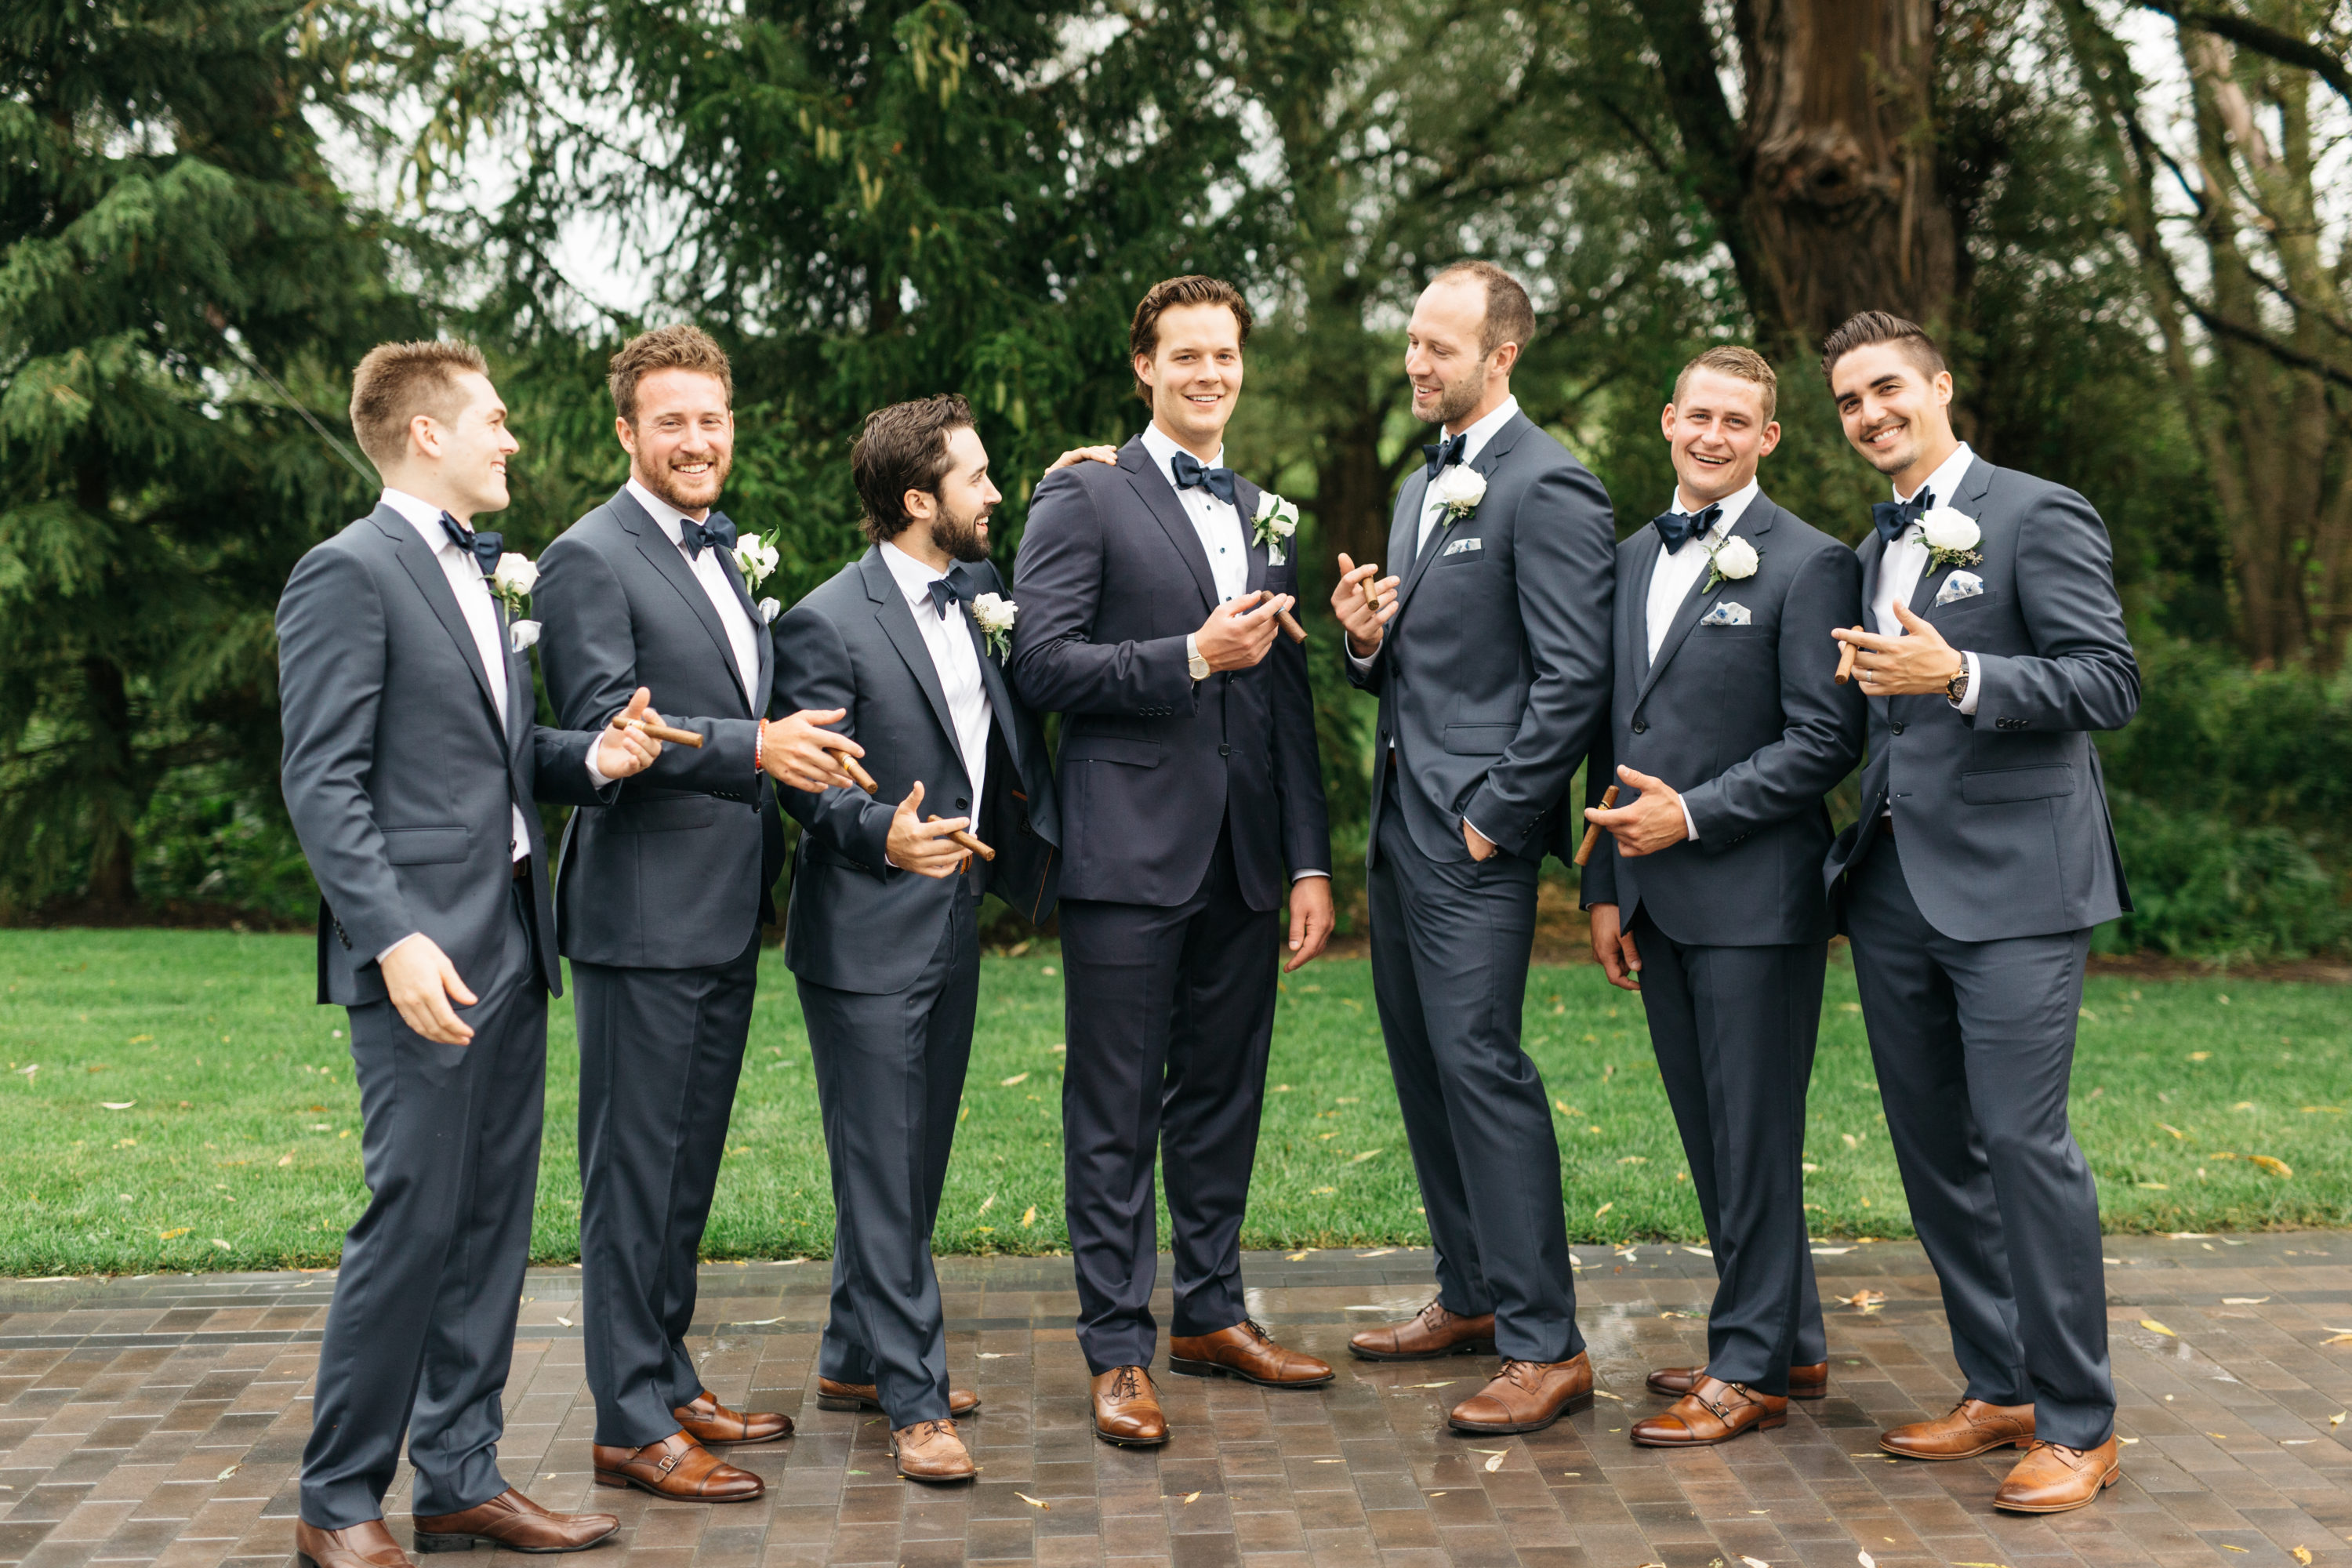 Groom with groomsmen at The Arlington Estate